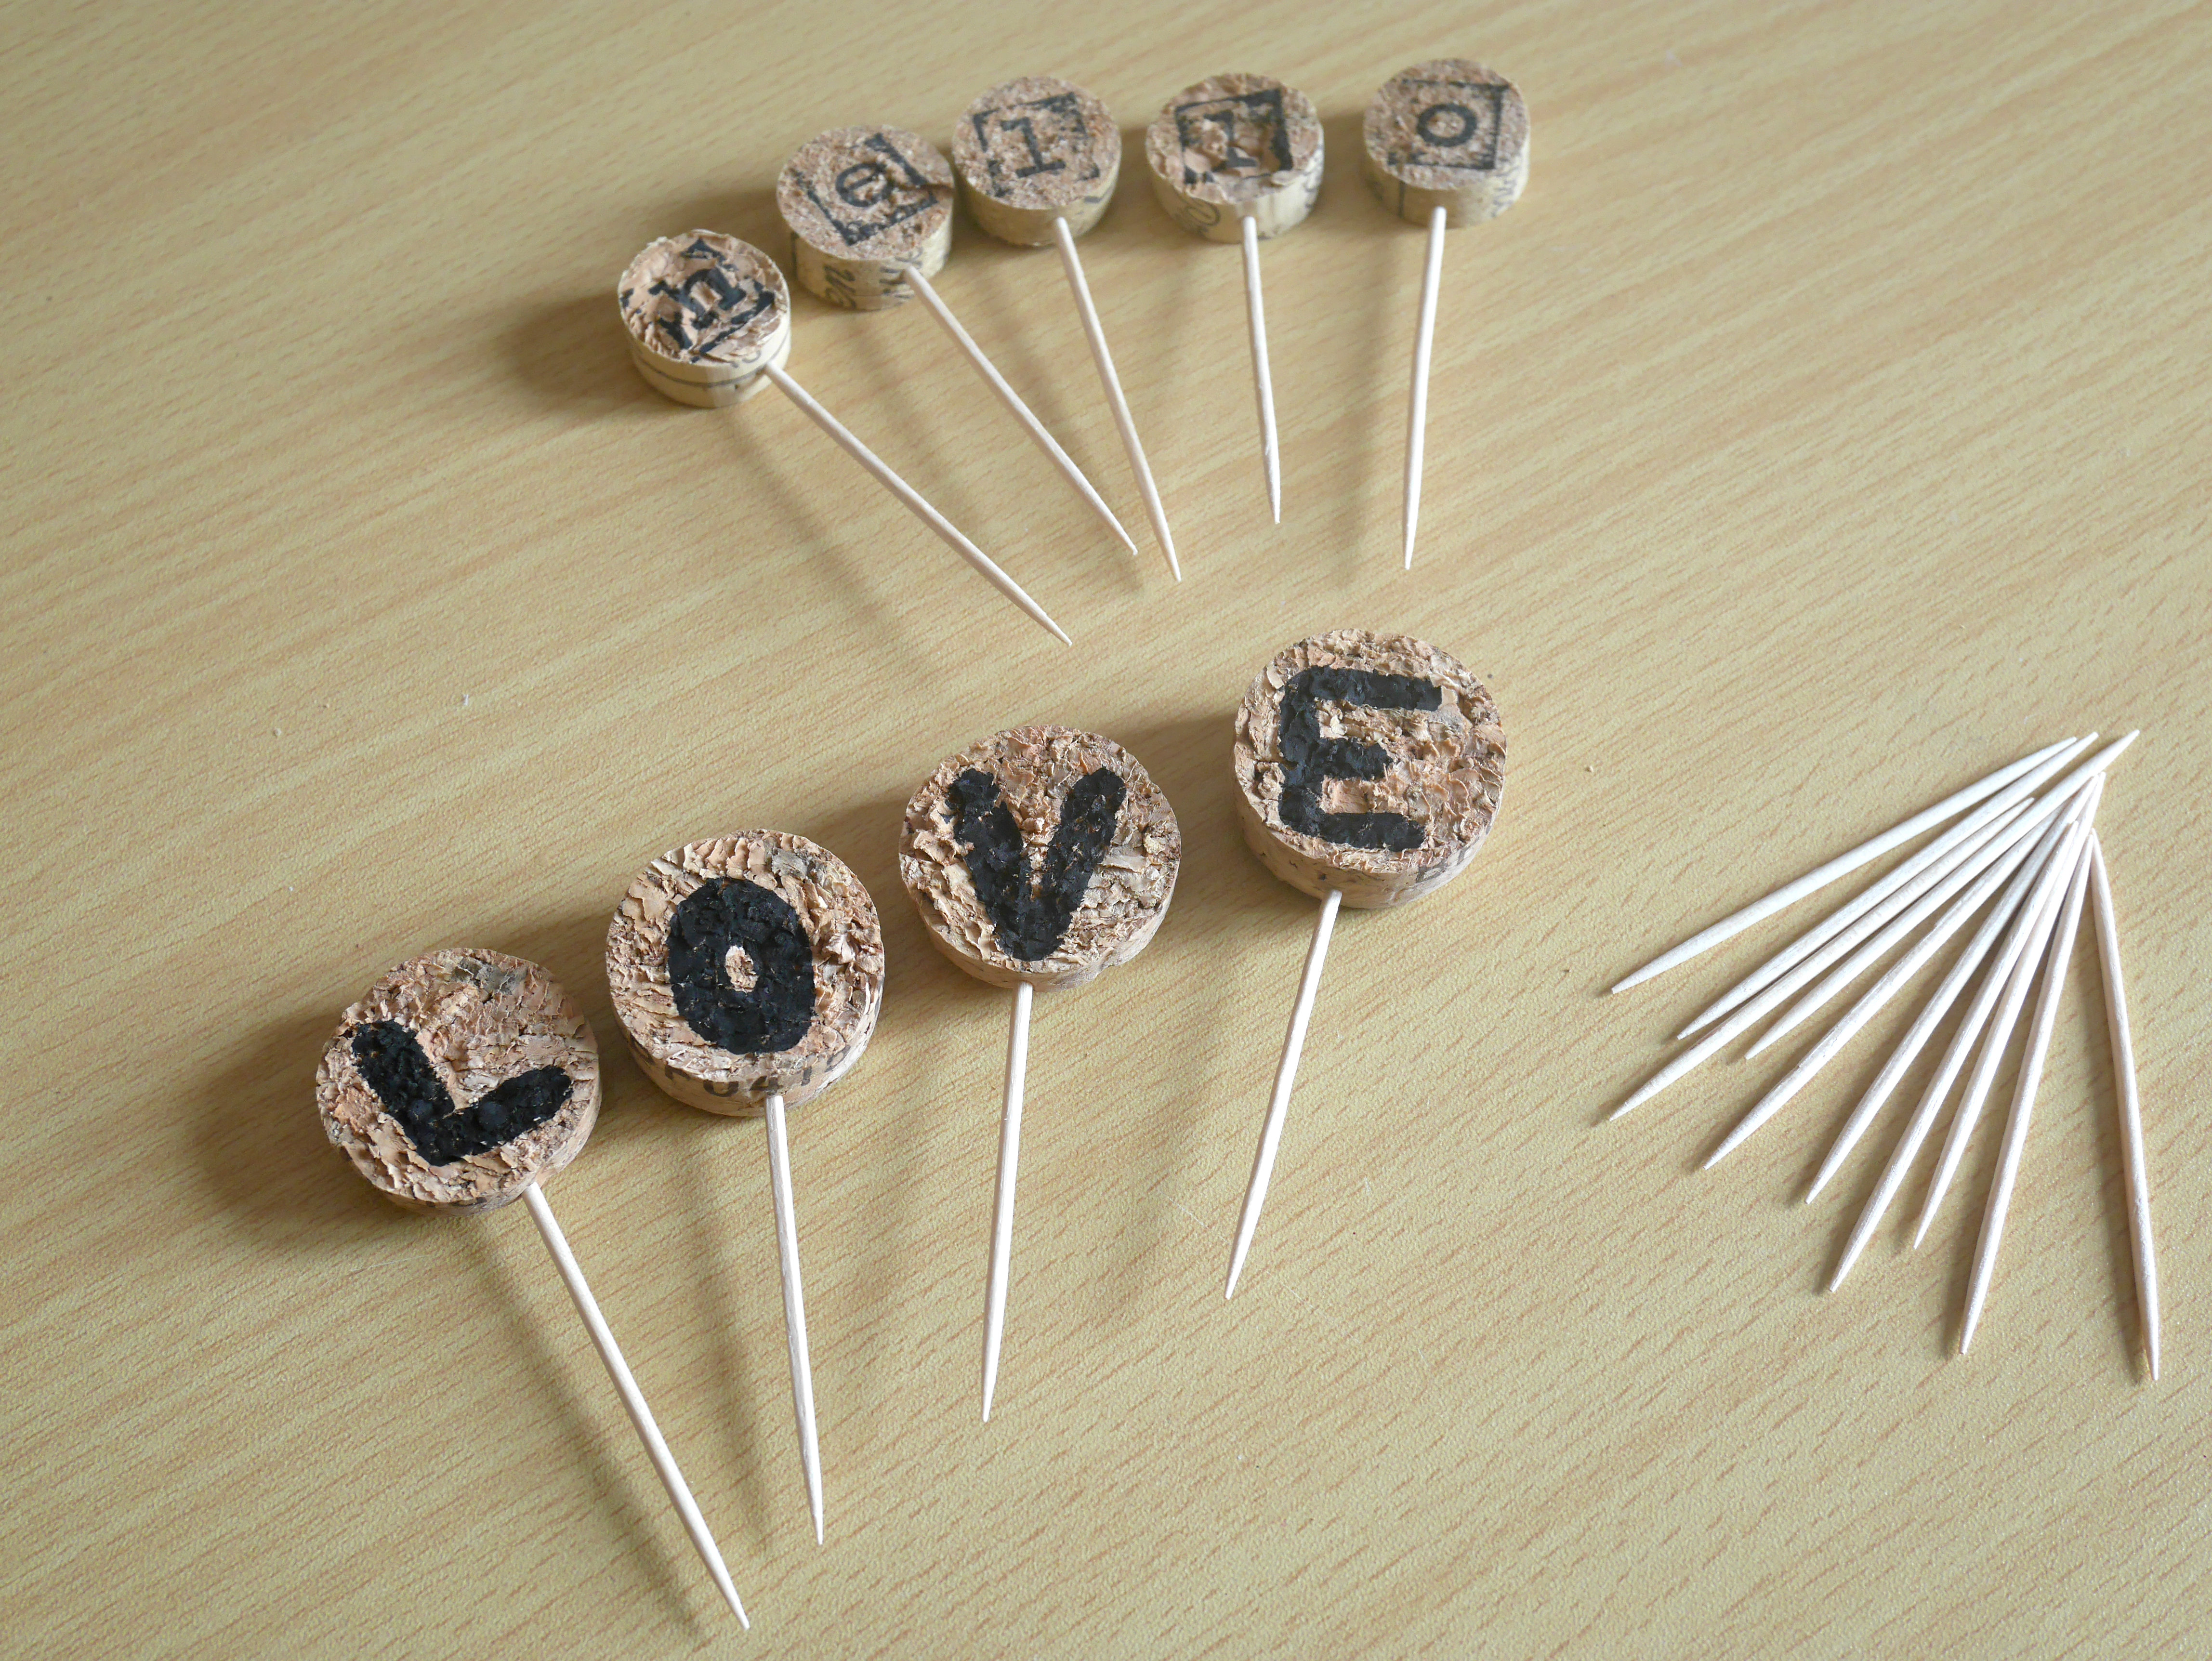 Diy bouchons toppers 4